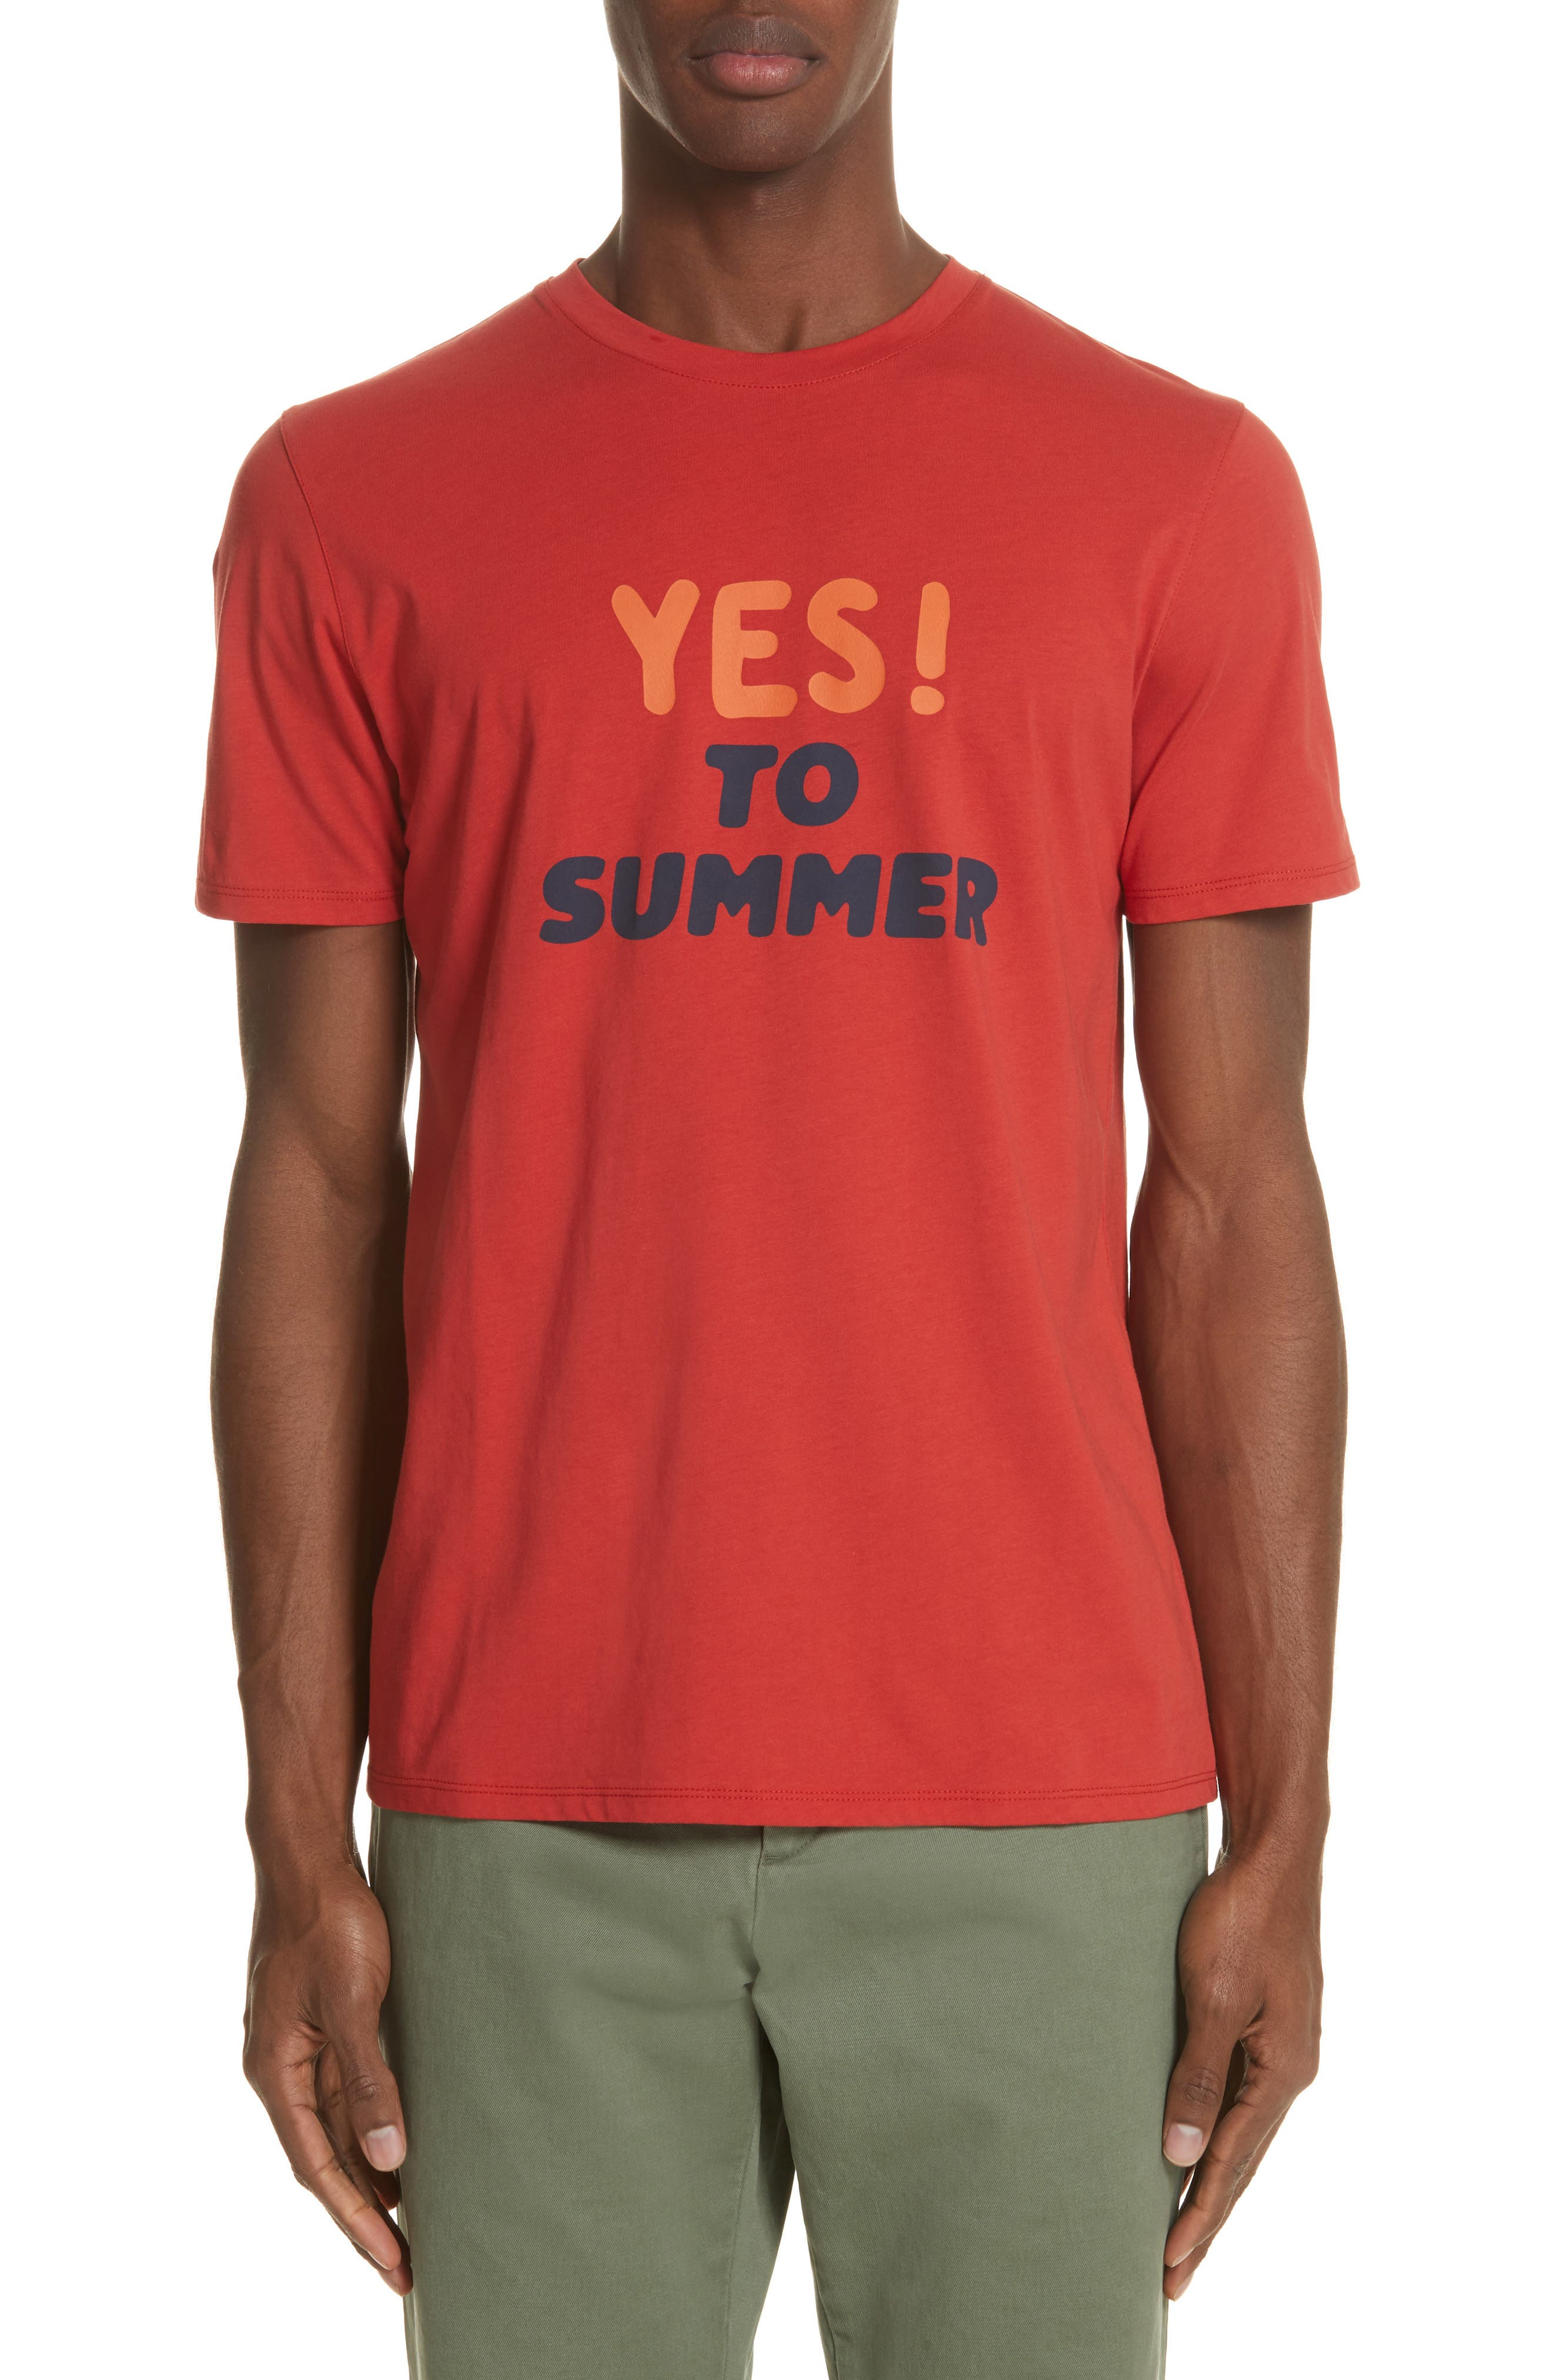 Alternate Image 1 Selected - A.P.C. Yes! To Summer Graphic T-Shirt